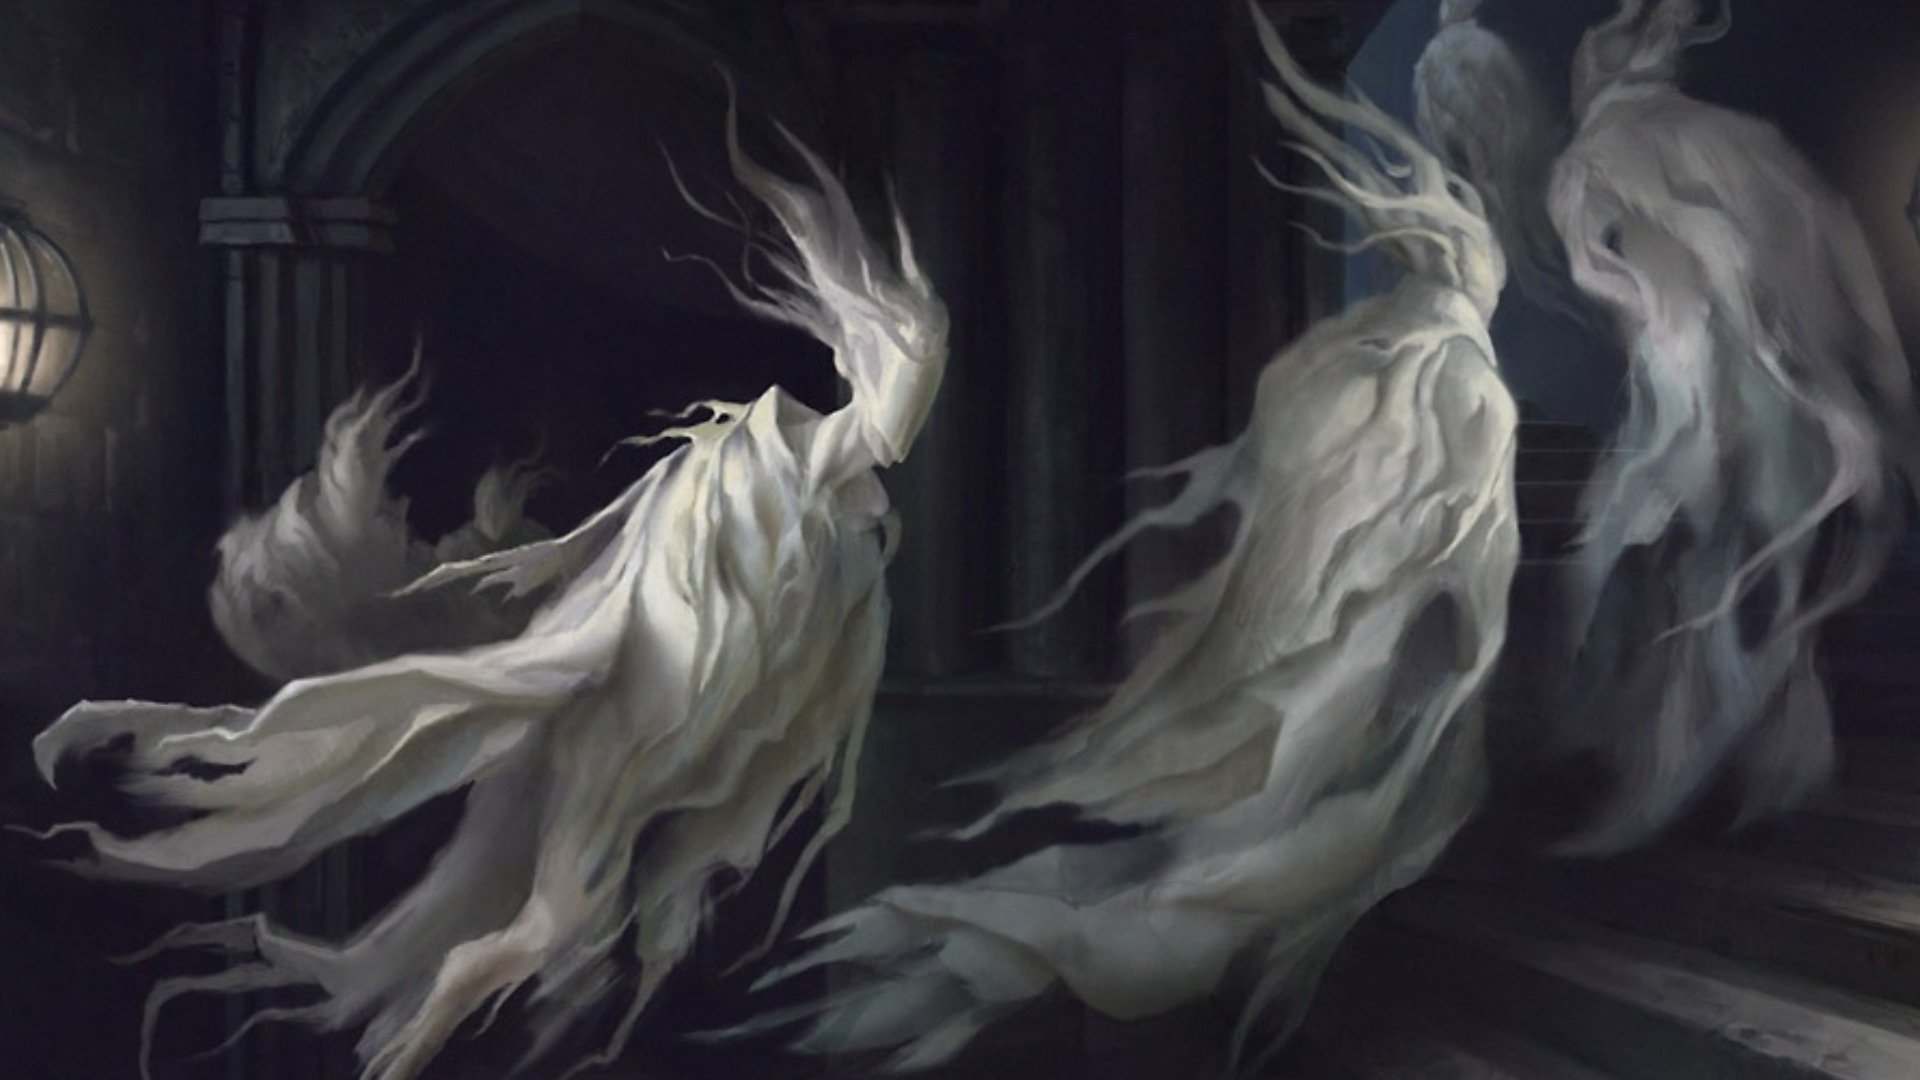 Ghost Computer Wallpapers Desktop Backgrounds 1920x1080 ID266721 1920x1080